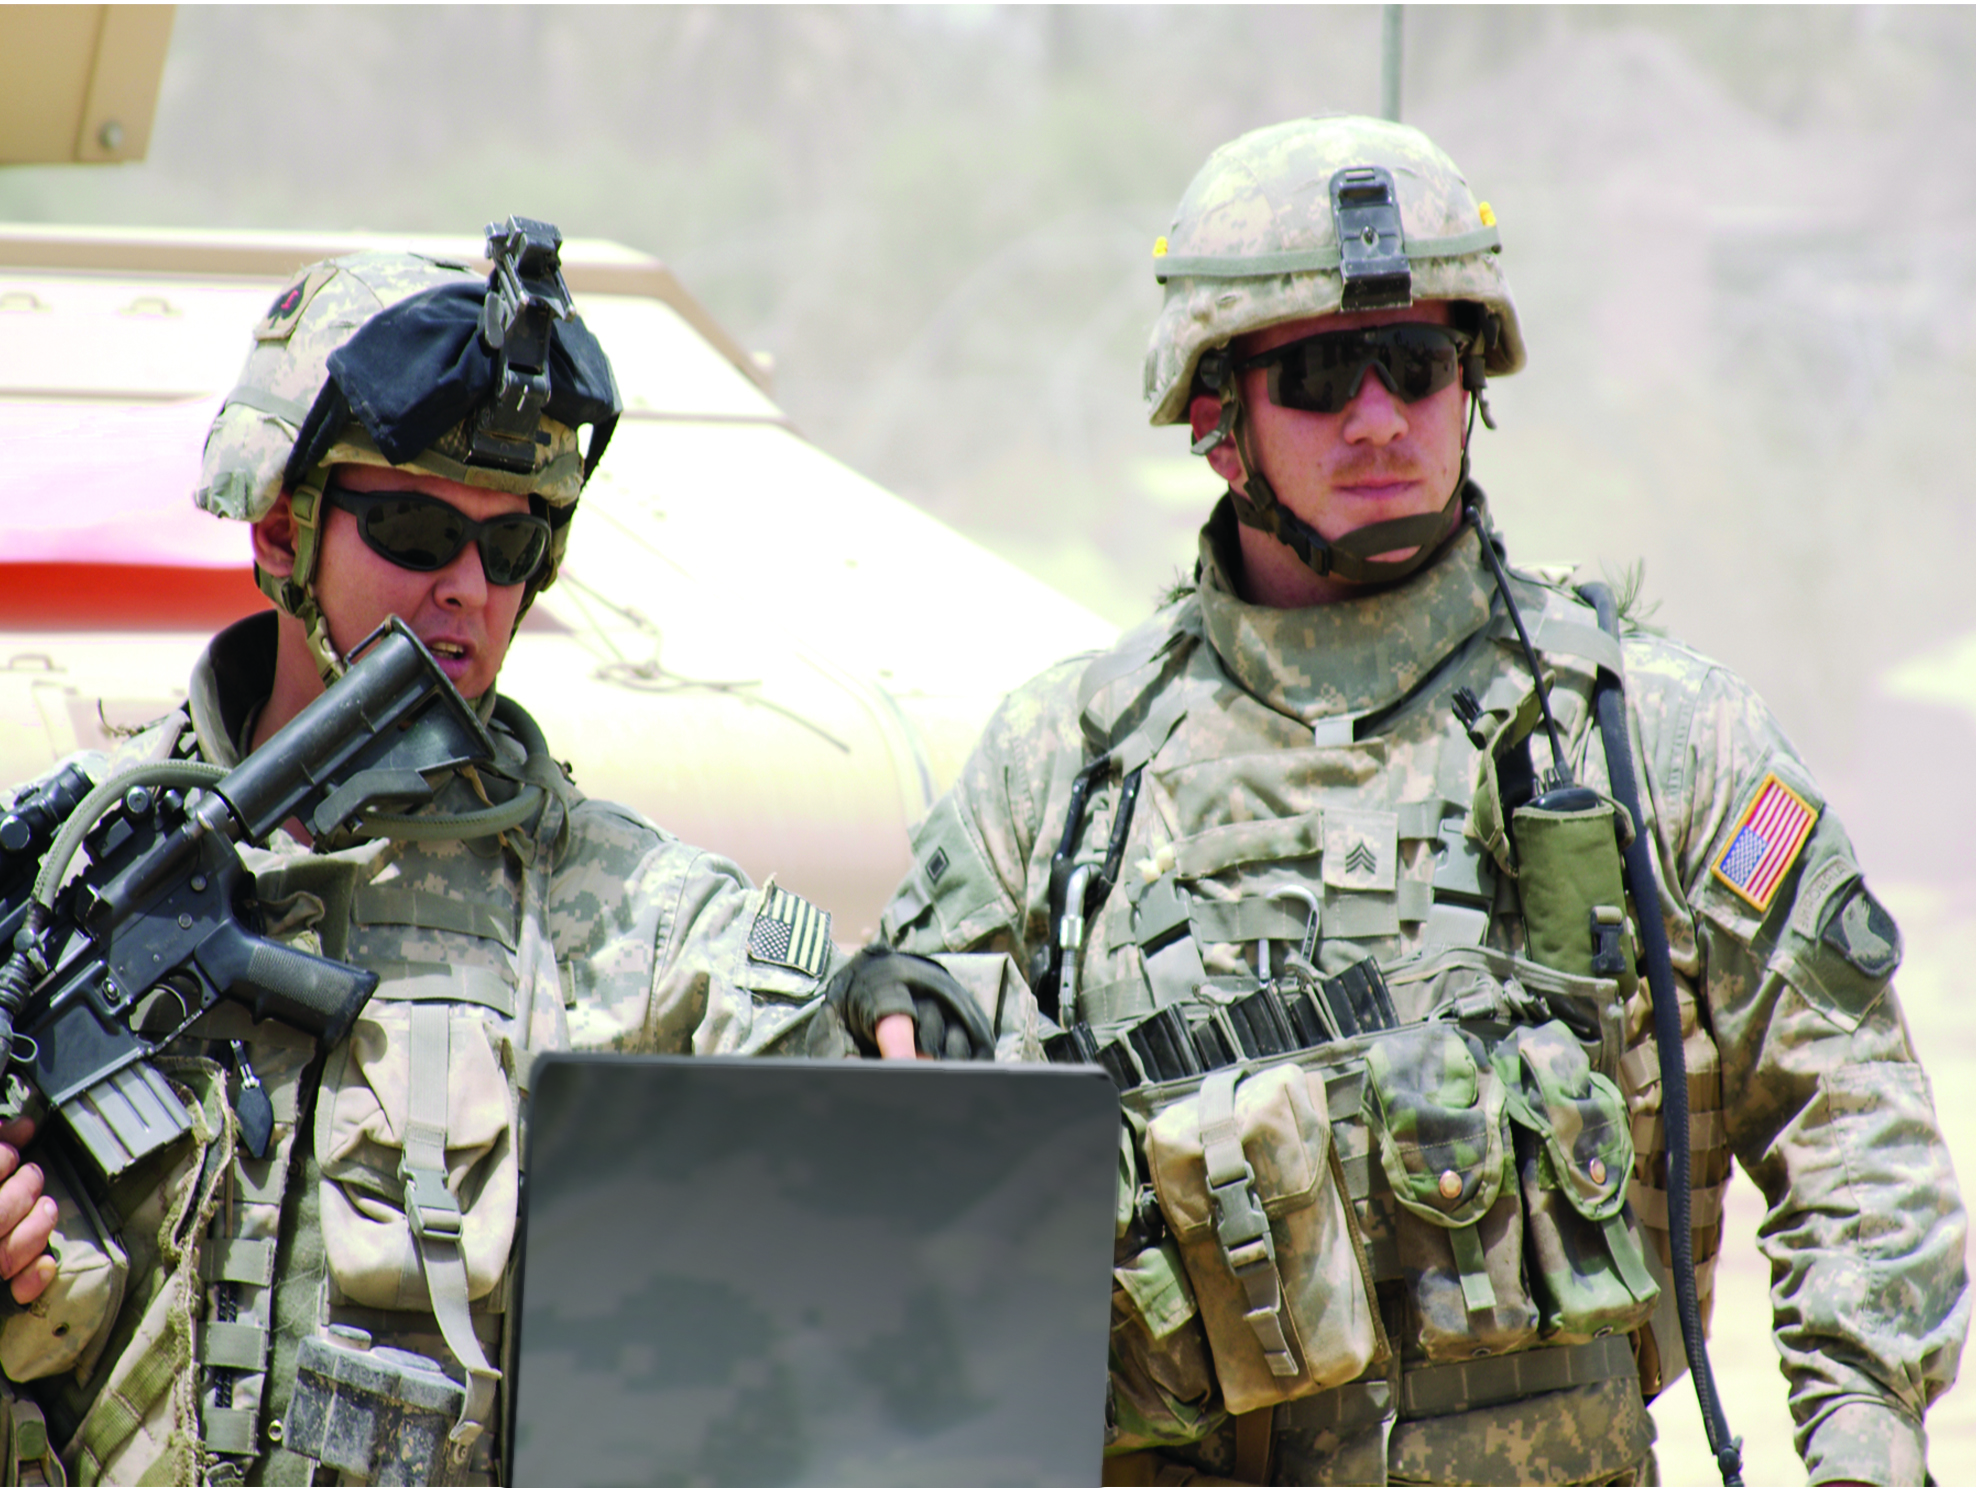 Special Forces performing digital forensics on computer